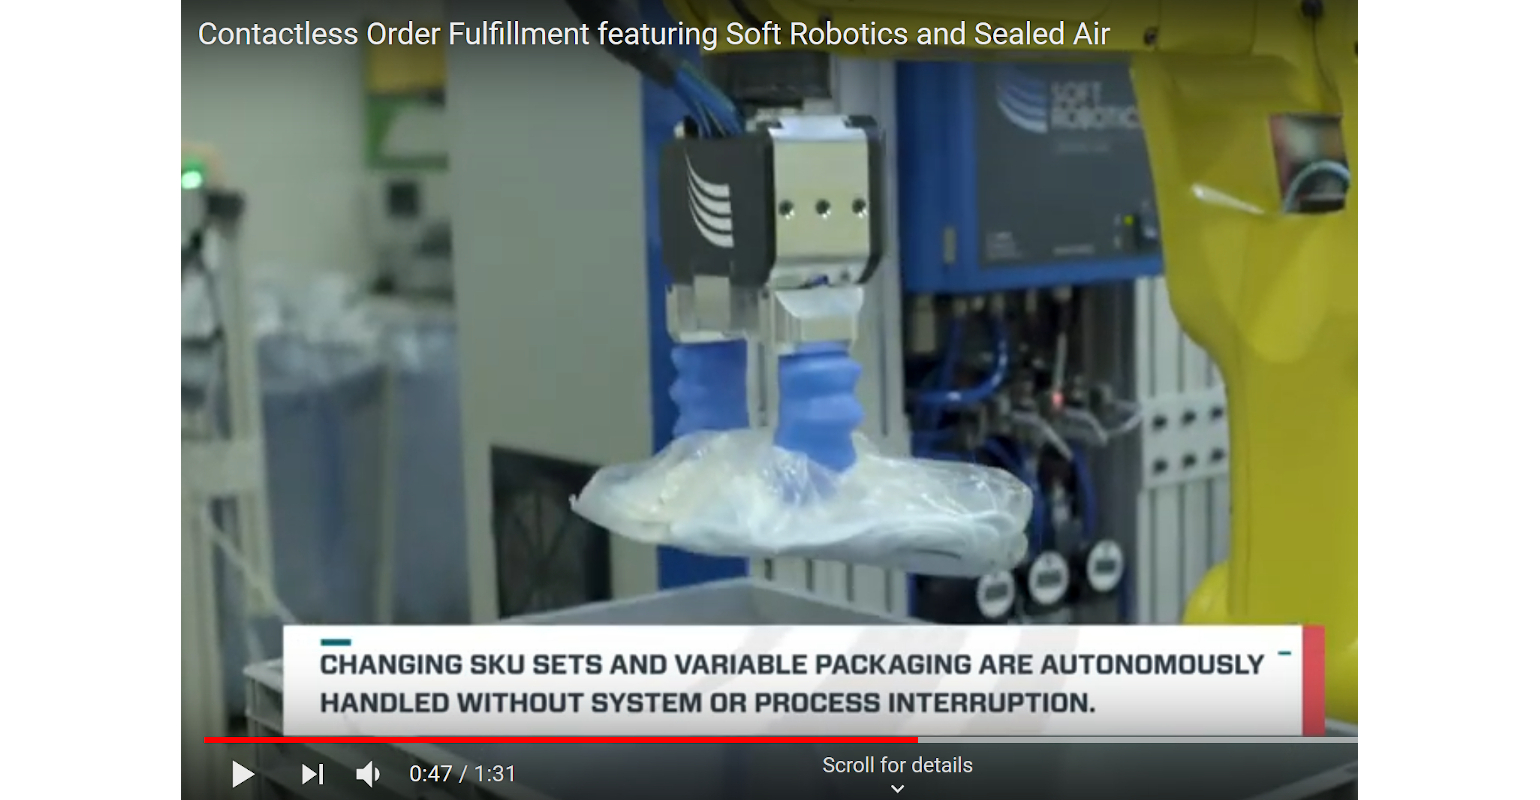 Robotic-video-Soft-Robotics-Sealed-Air-featured.jpg